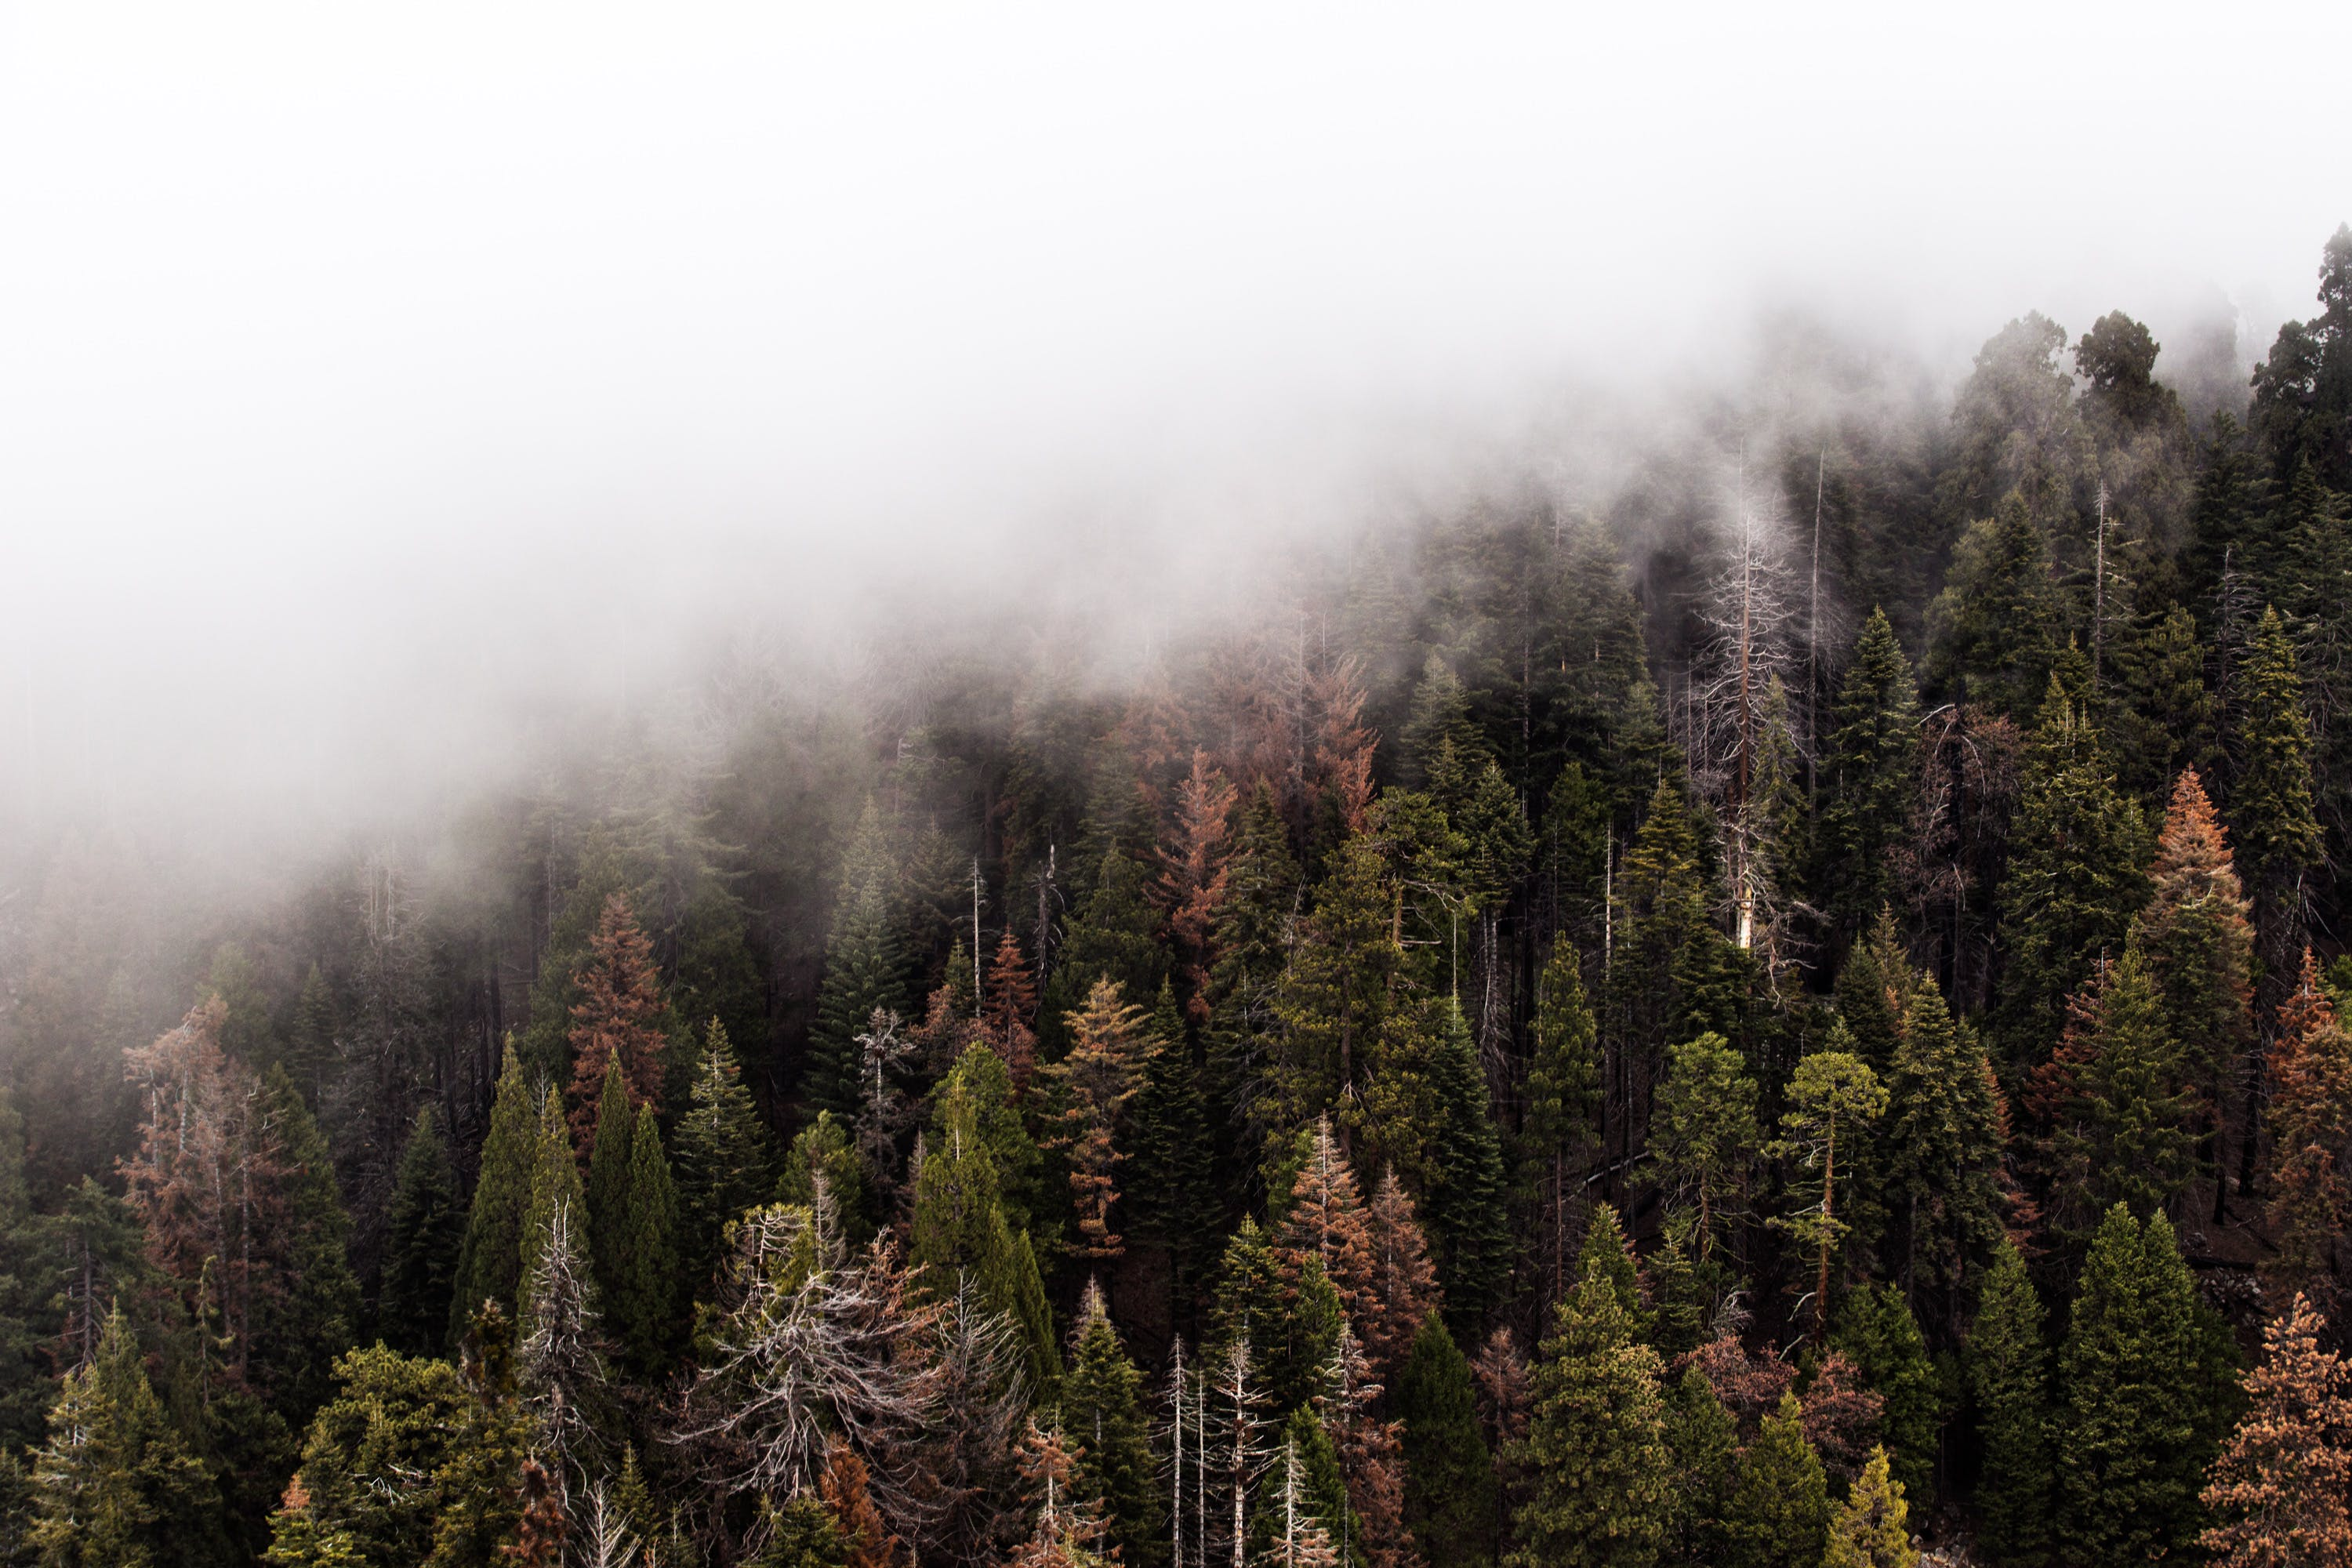 Green Pine Trees With Fog